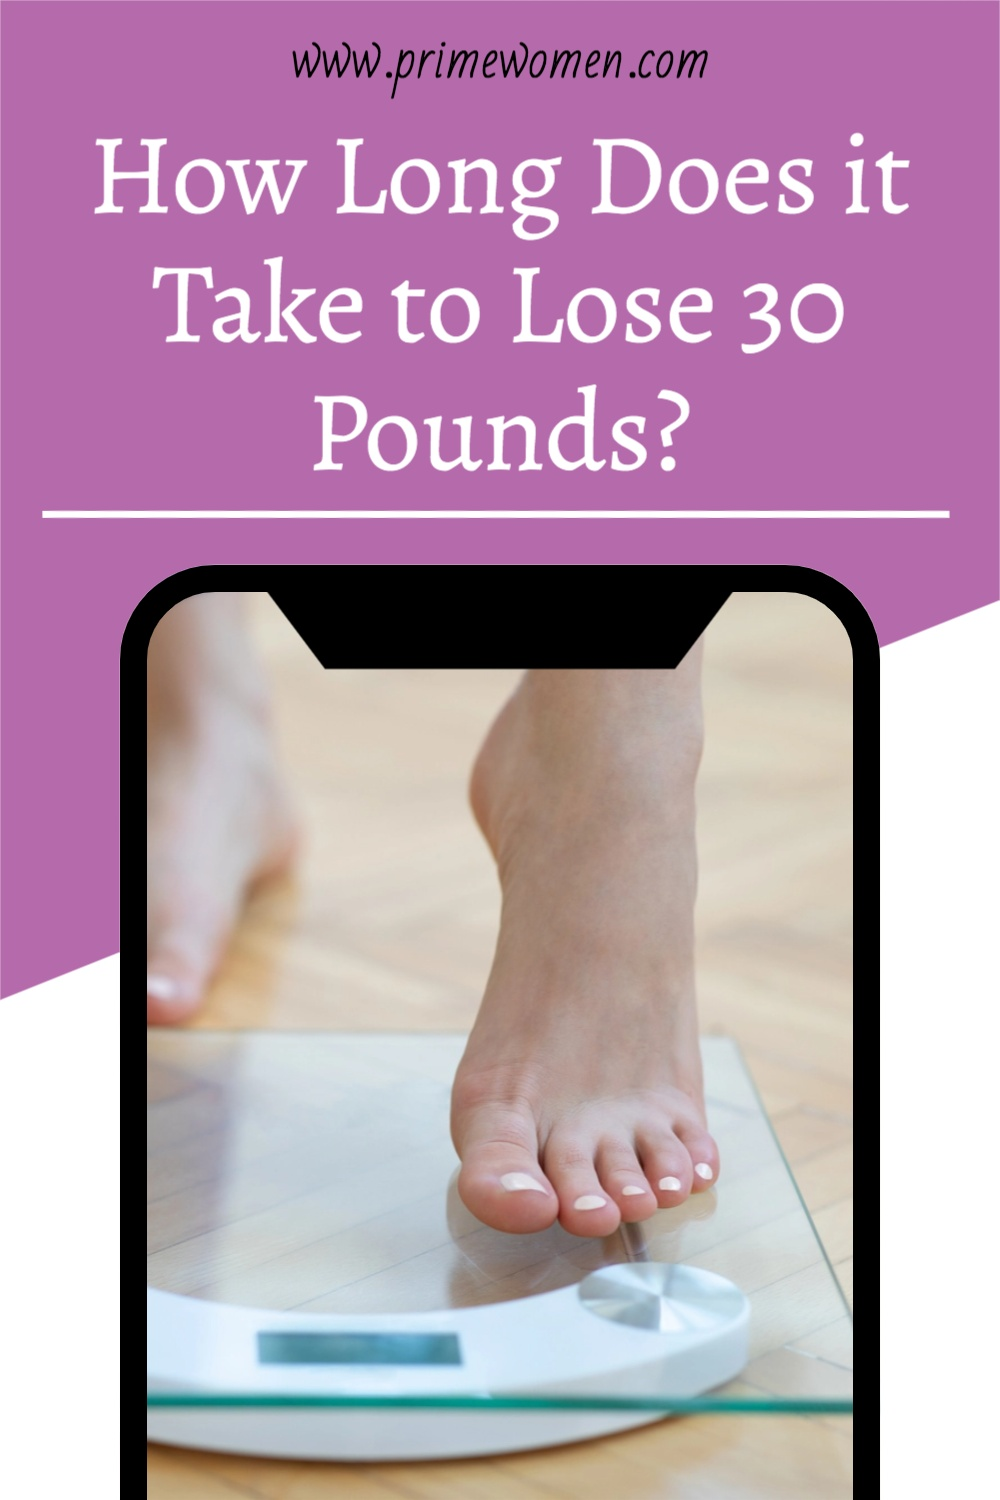 How-Long-Does-it-Take-to-Lose-30-Pounds